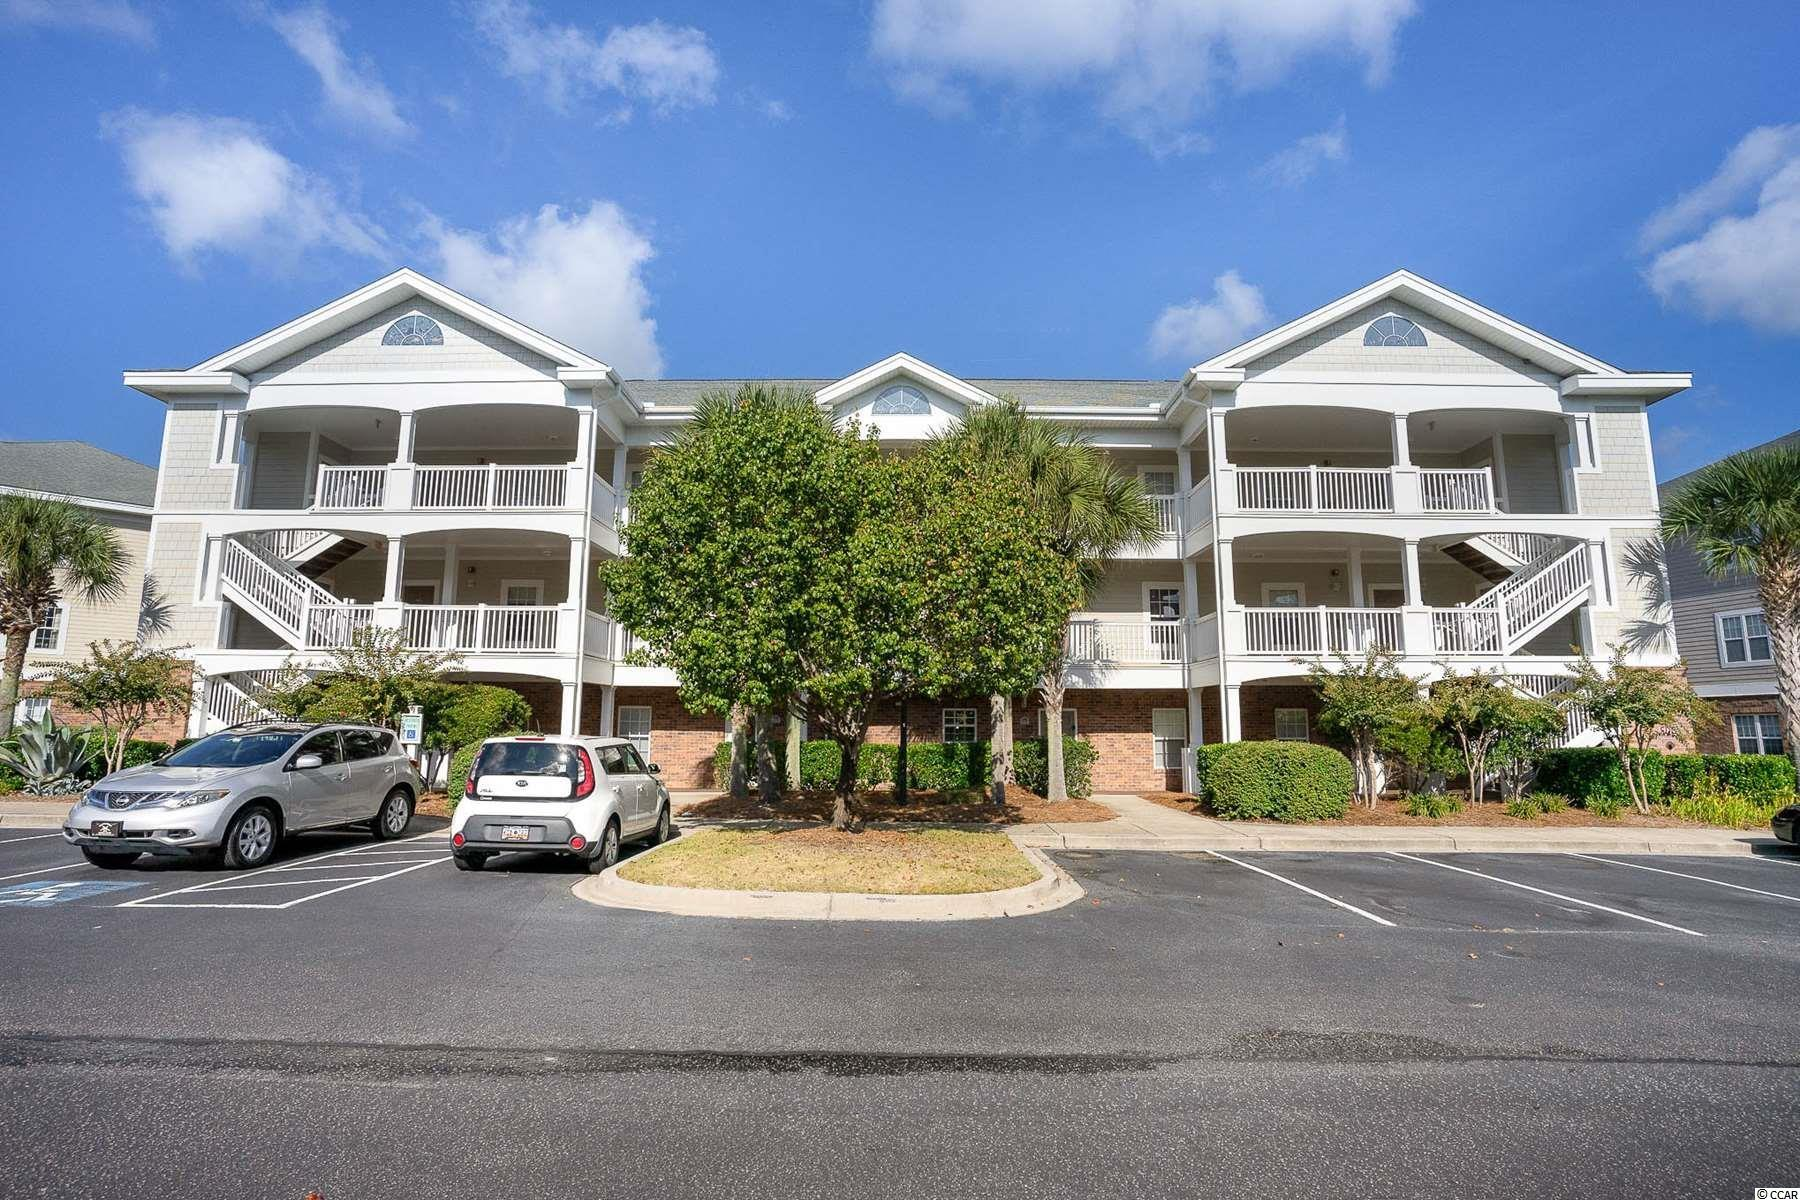 This beautiful, ground floor, fully furnished,  2 bed 2 bath, end unit condo is located in the desirable community of Ironwood at Barefoot Resort! This unit features an open floor plan and great views. Generous sized bedrooms with private full baths, and a private balcony. The kitchen offers ample cabinet & counter space, along with additional seating at the breakfast bar.  The owners and their guests can enjoy a pool, tennis courts, basketball court and volleyball right in the property. Barefoot Resort has many amenities including a Beach Cabana, with private parking & restrooms. Shuttle service to and from the Cabana is provided during the summer months. You will also have access to an Olympic Sized Salt Water Pool that overlooks the Intracoastal Waterway. Conveniently located just minutes from the beach and all the shopping, dining and entertainment that North Myrtle Beach has to offer.  Schedule your showing today!